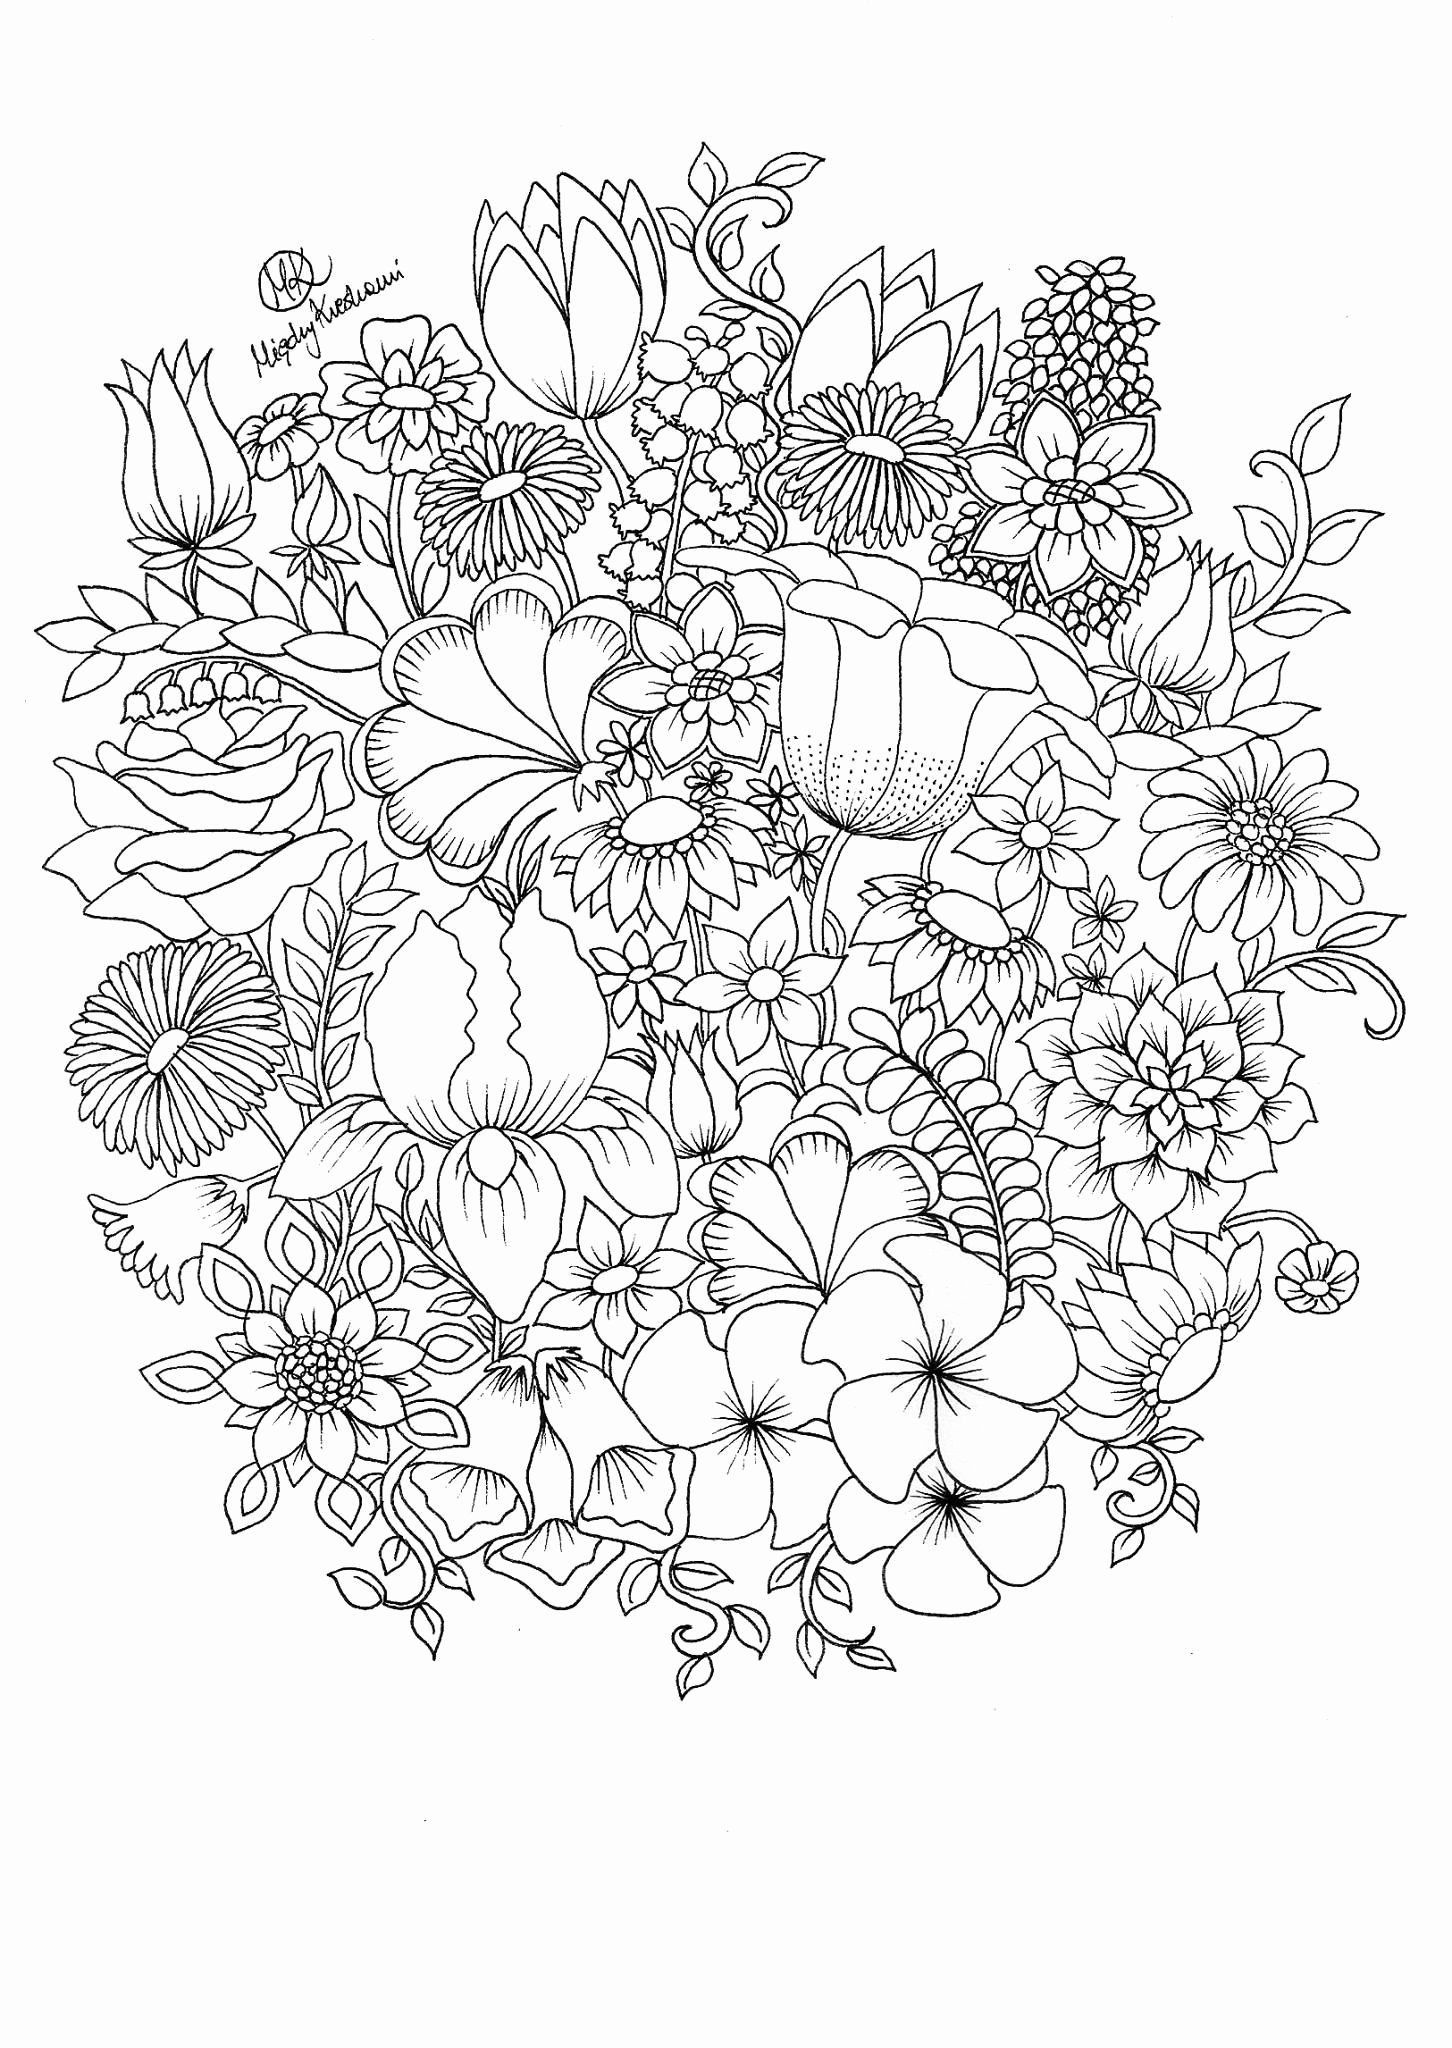 free flower coloring pages for adults adult coloring pages flowers to download and print for free adults free flower coloring for pages